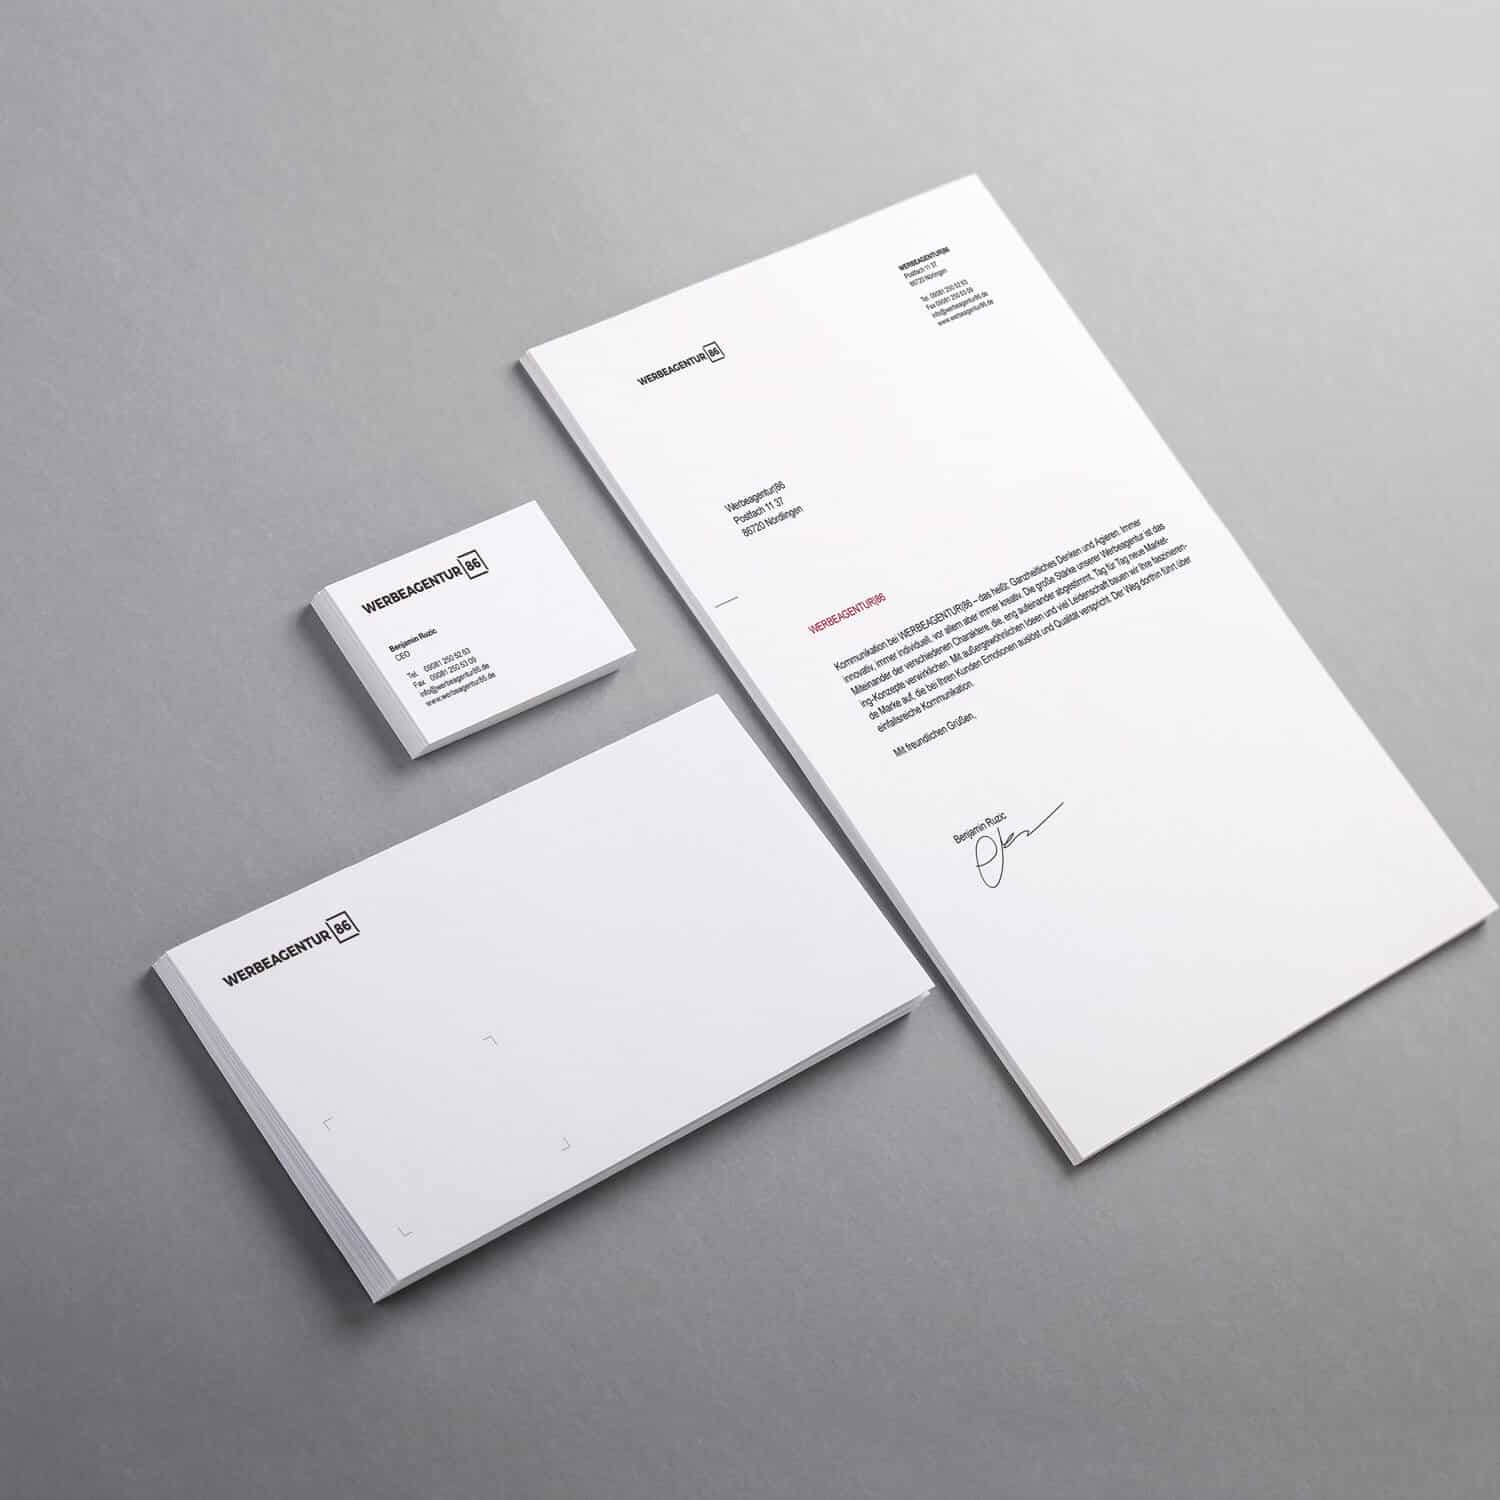 Corporate Design Werbeagentur 86 Die Werbeagentur In